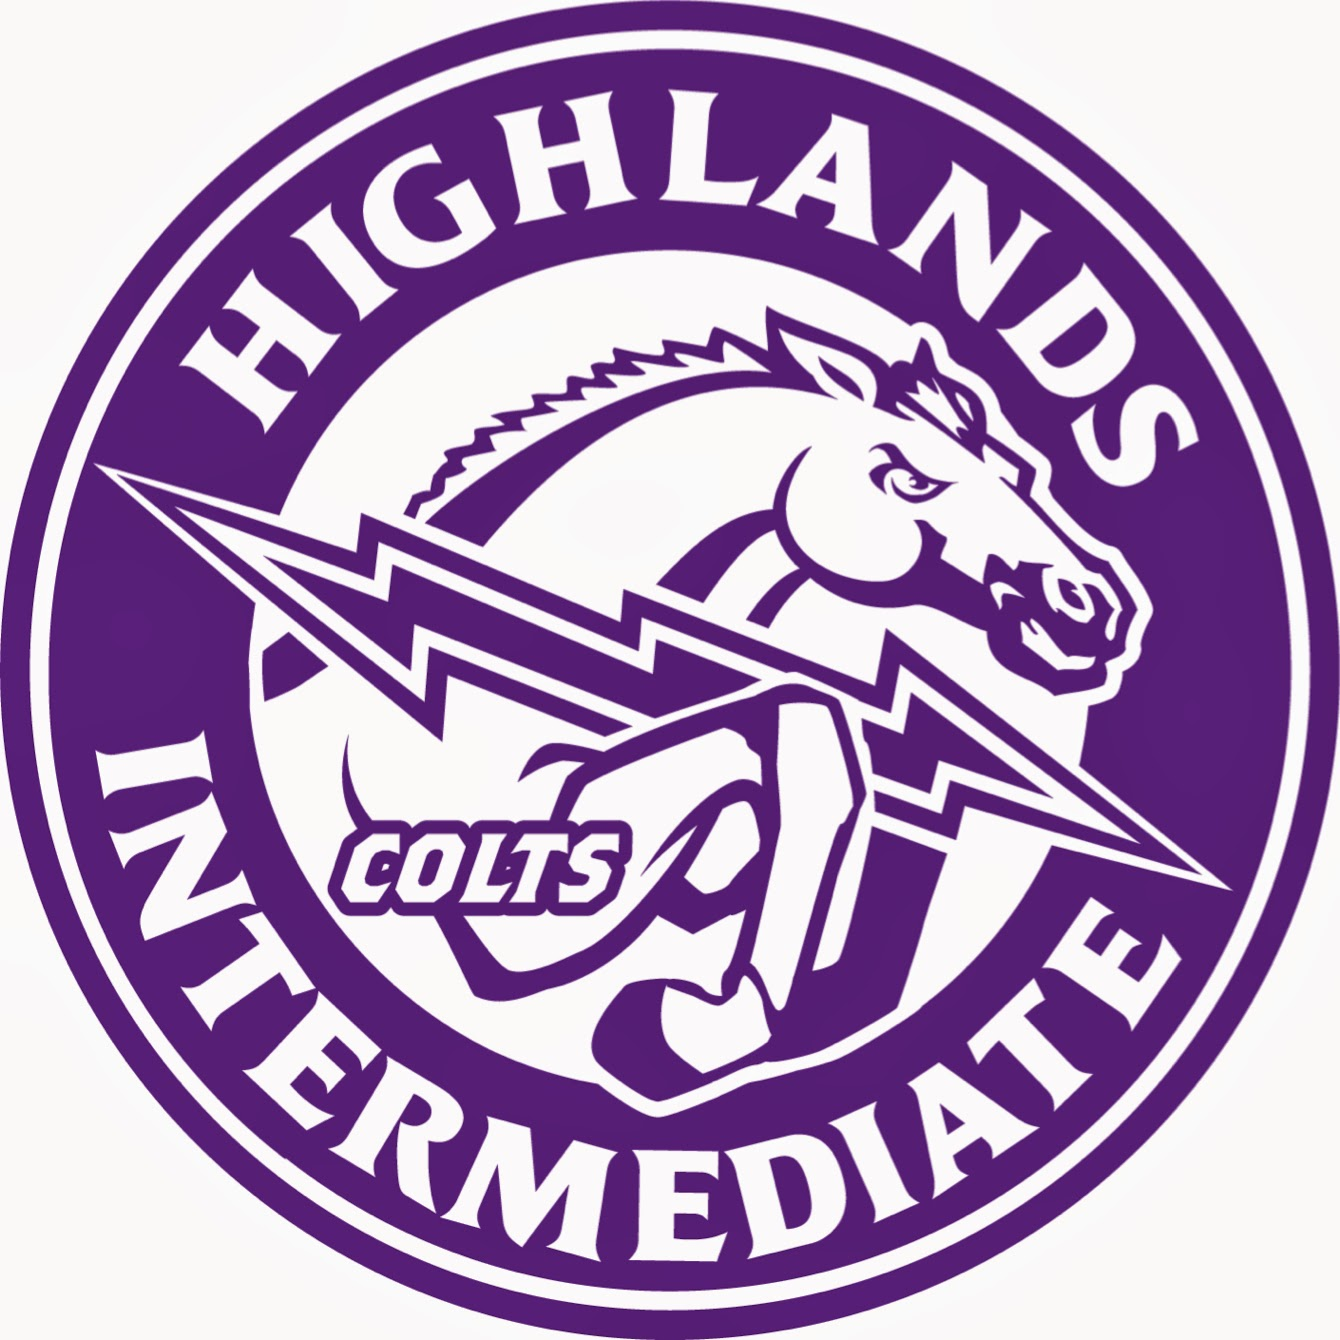 Home of the Highlands Colts!